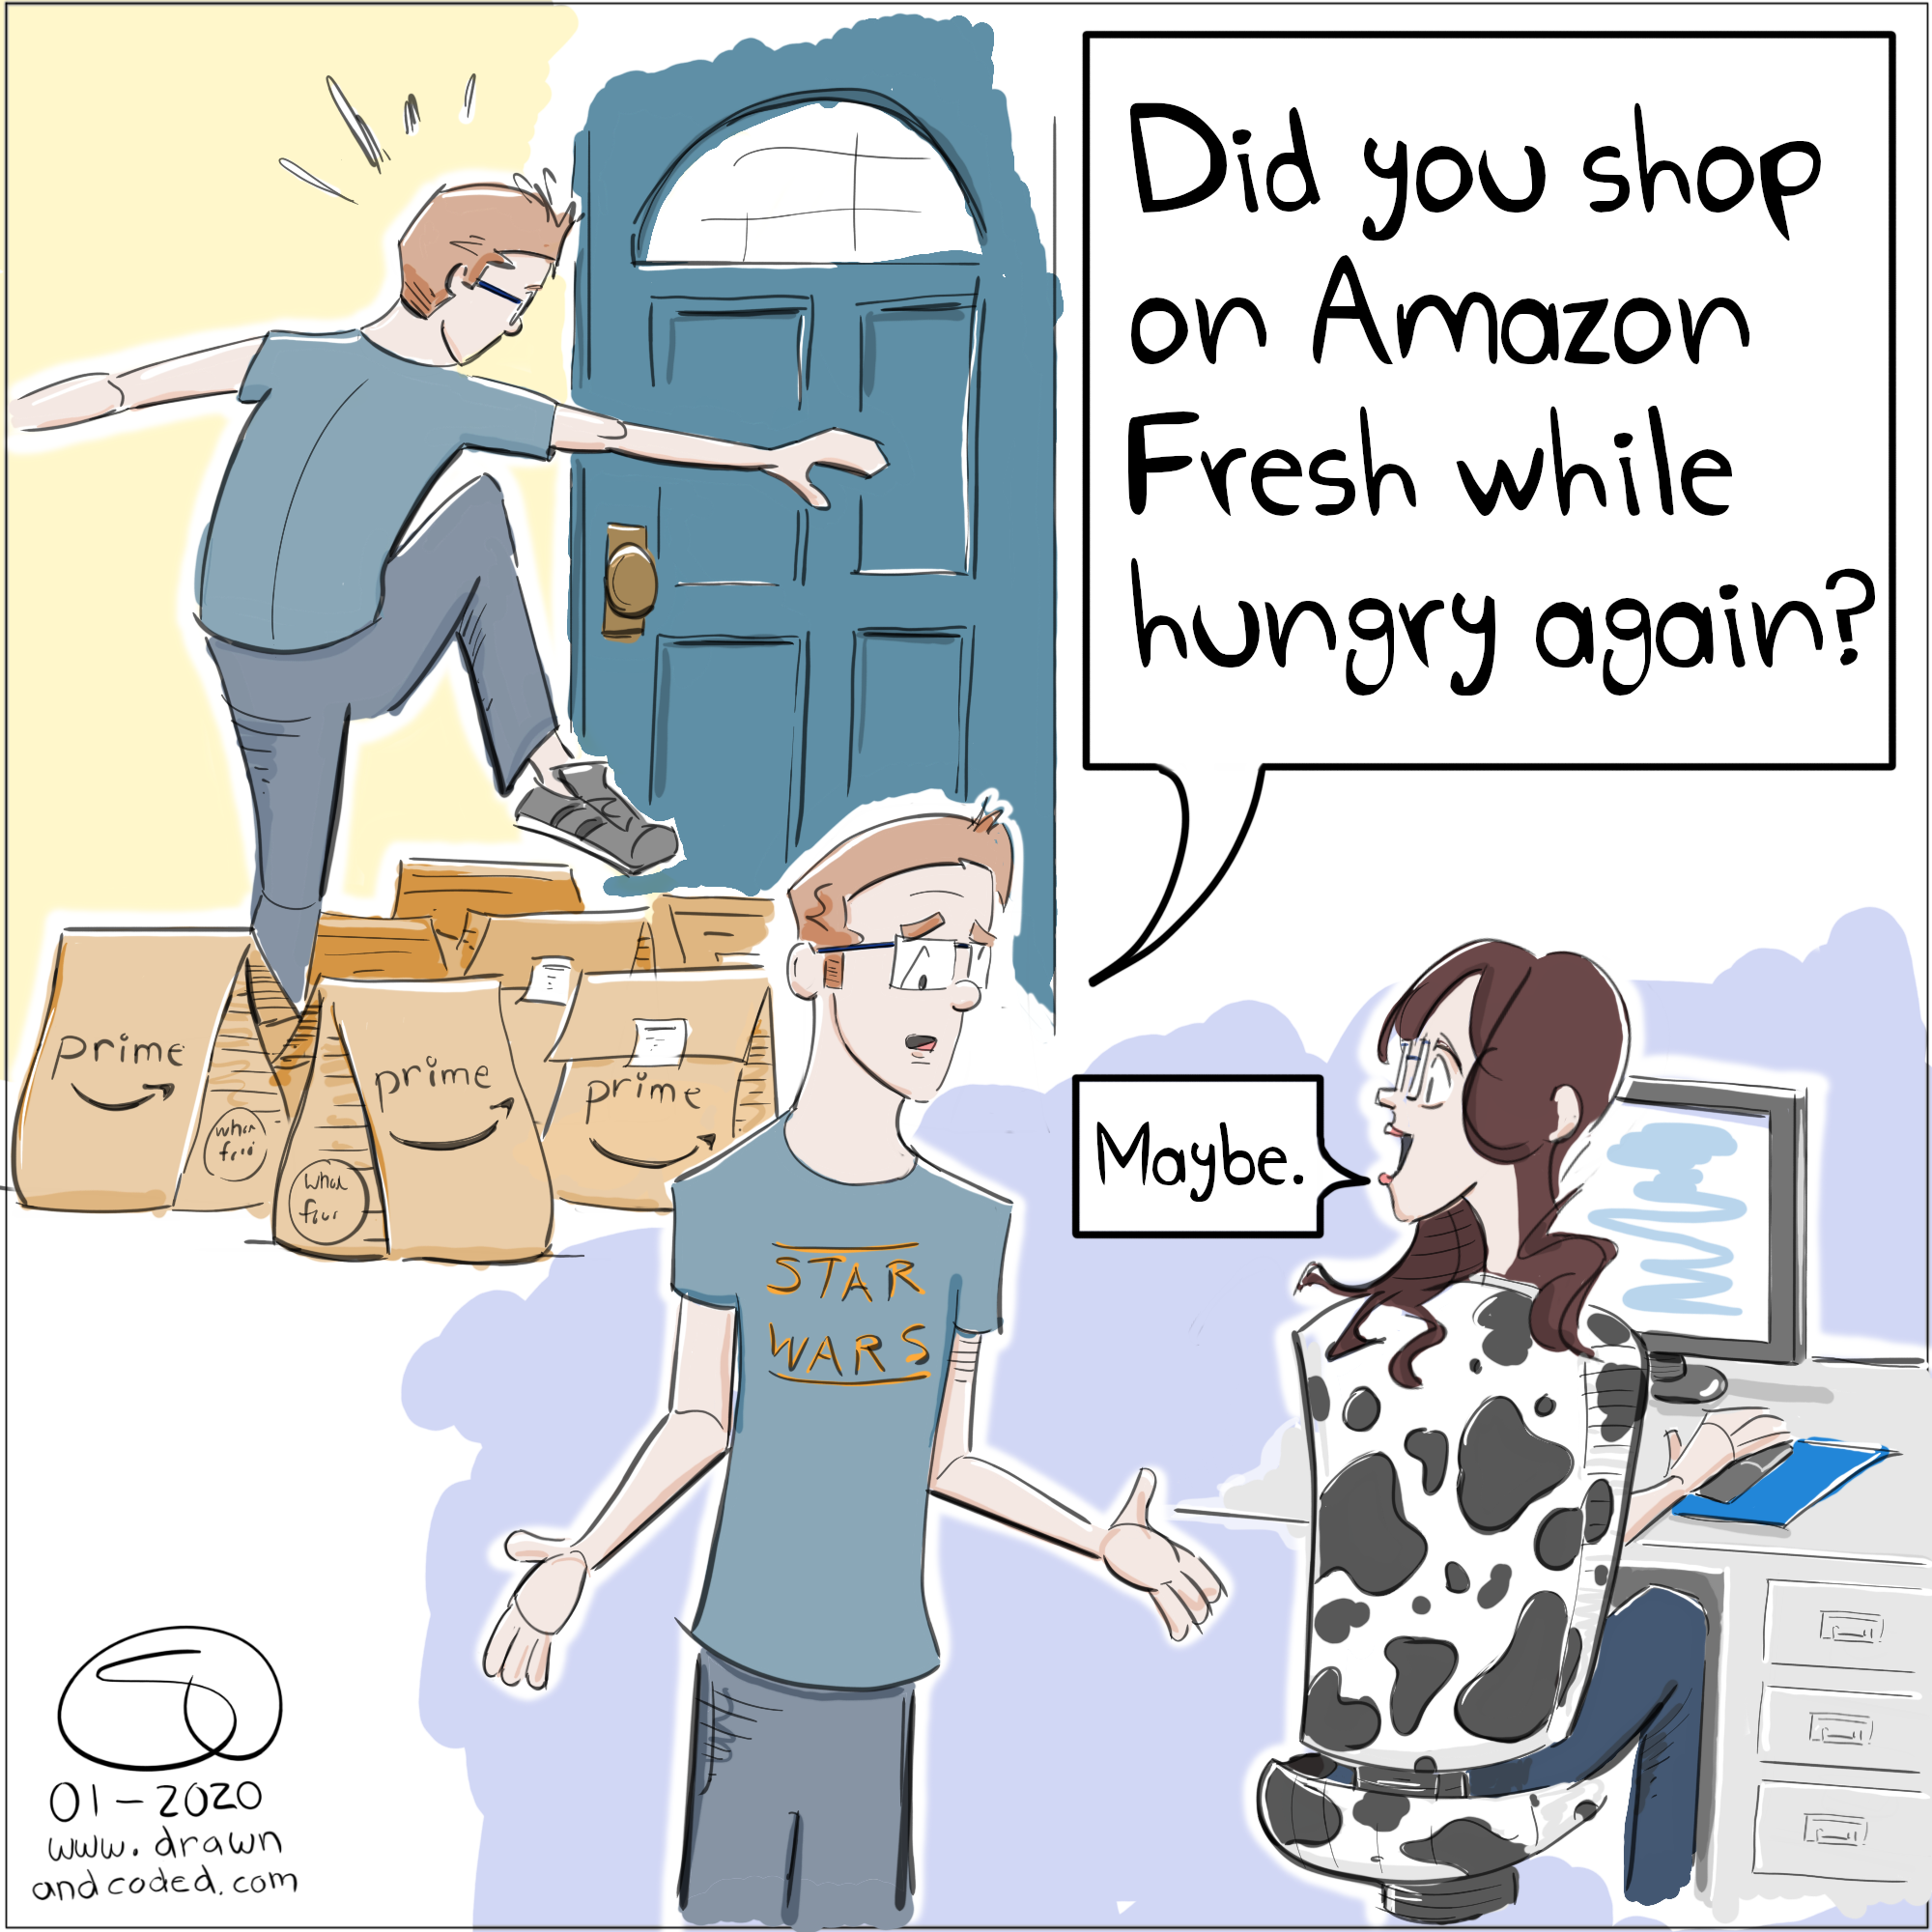 amazon whole foods amazon fresh grocery delivery buy it now fresh foodie grocery store hungry hangry comic